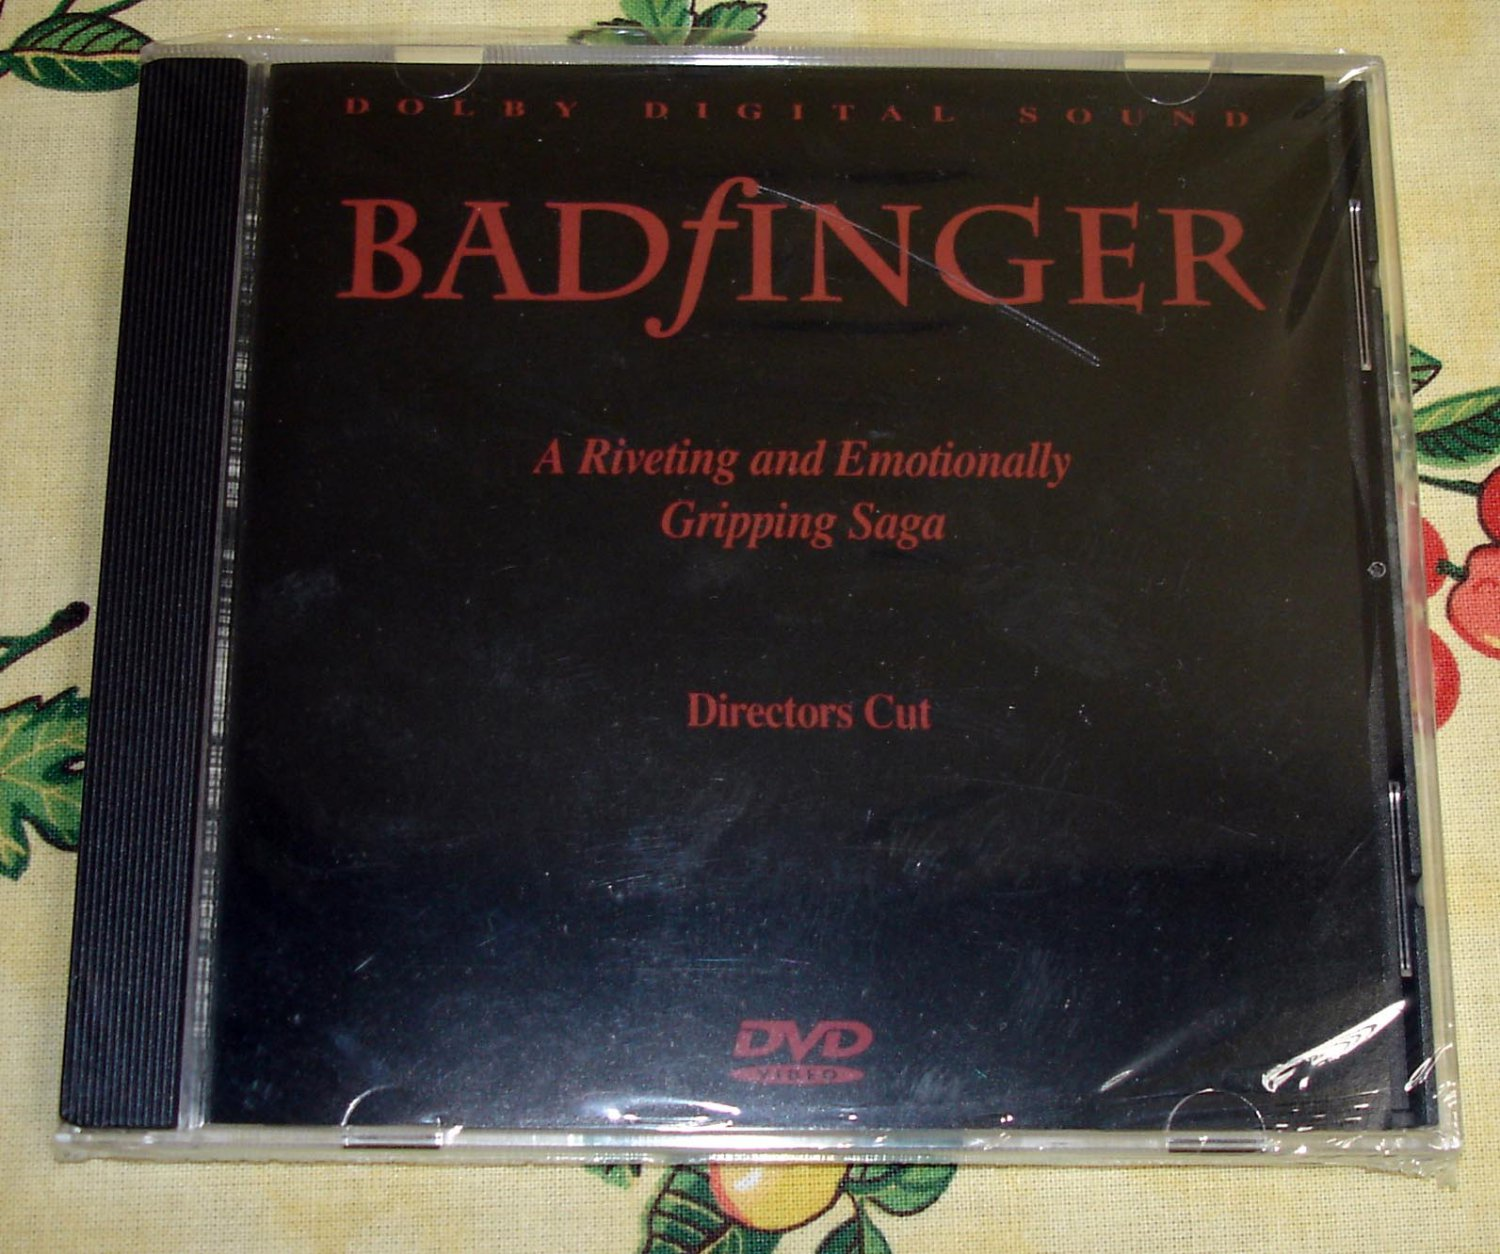 Badfinger Director's Cut : A Riveting And Emotionally Gripping Saga DVD